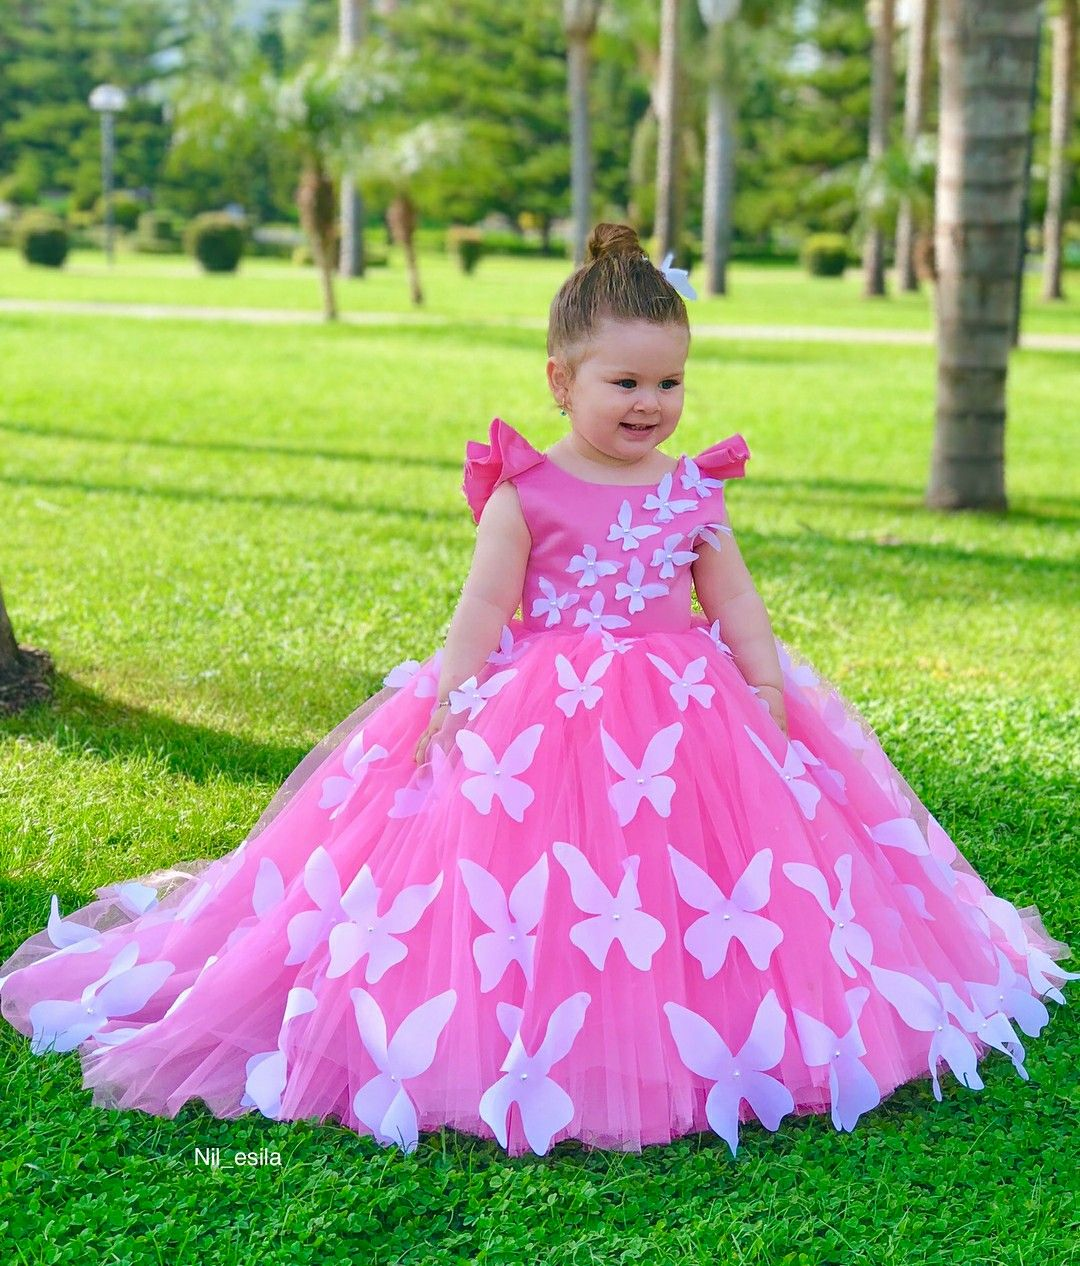 87532227eff9 Pink prom Flower Girl Dresses, Girls Dresses, Wedding Dresses, Flowers,  Fashion,